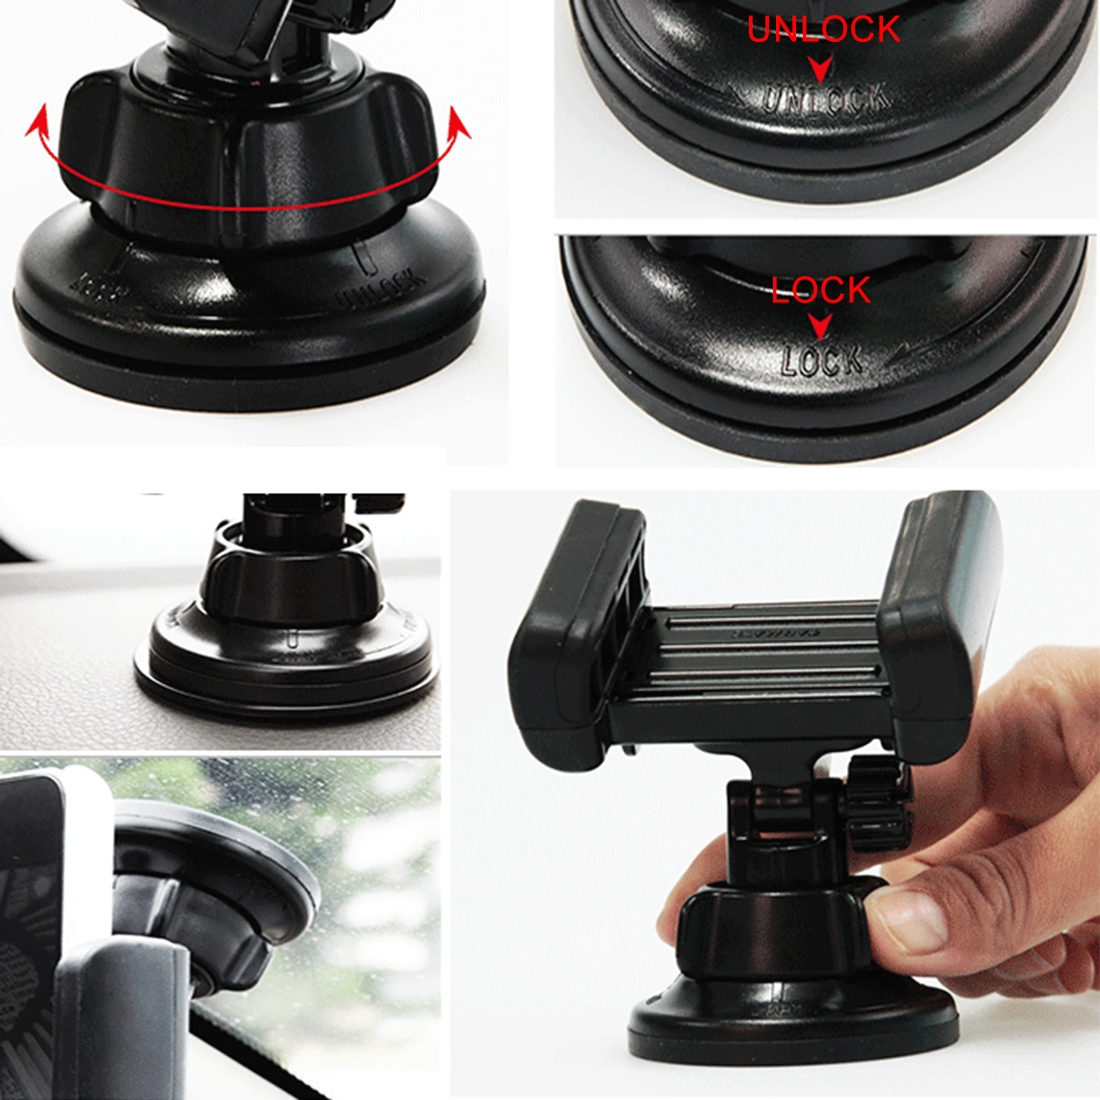 3R-1005 Universal Car Suction Cup Mount Bracket Phone Holder for 68-80mm Mobile Phone